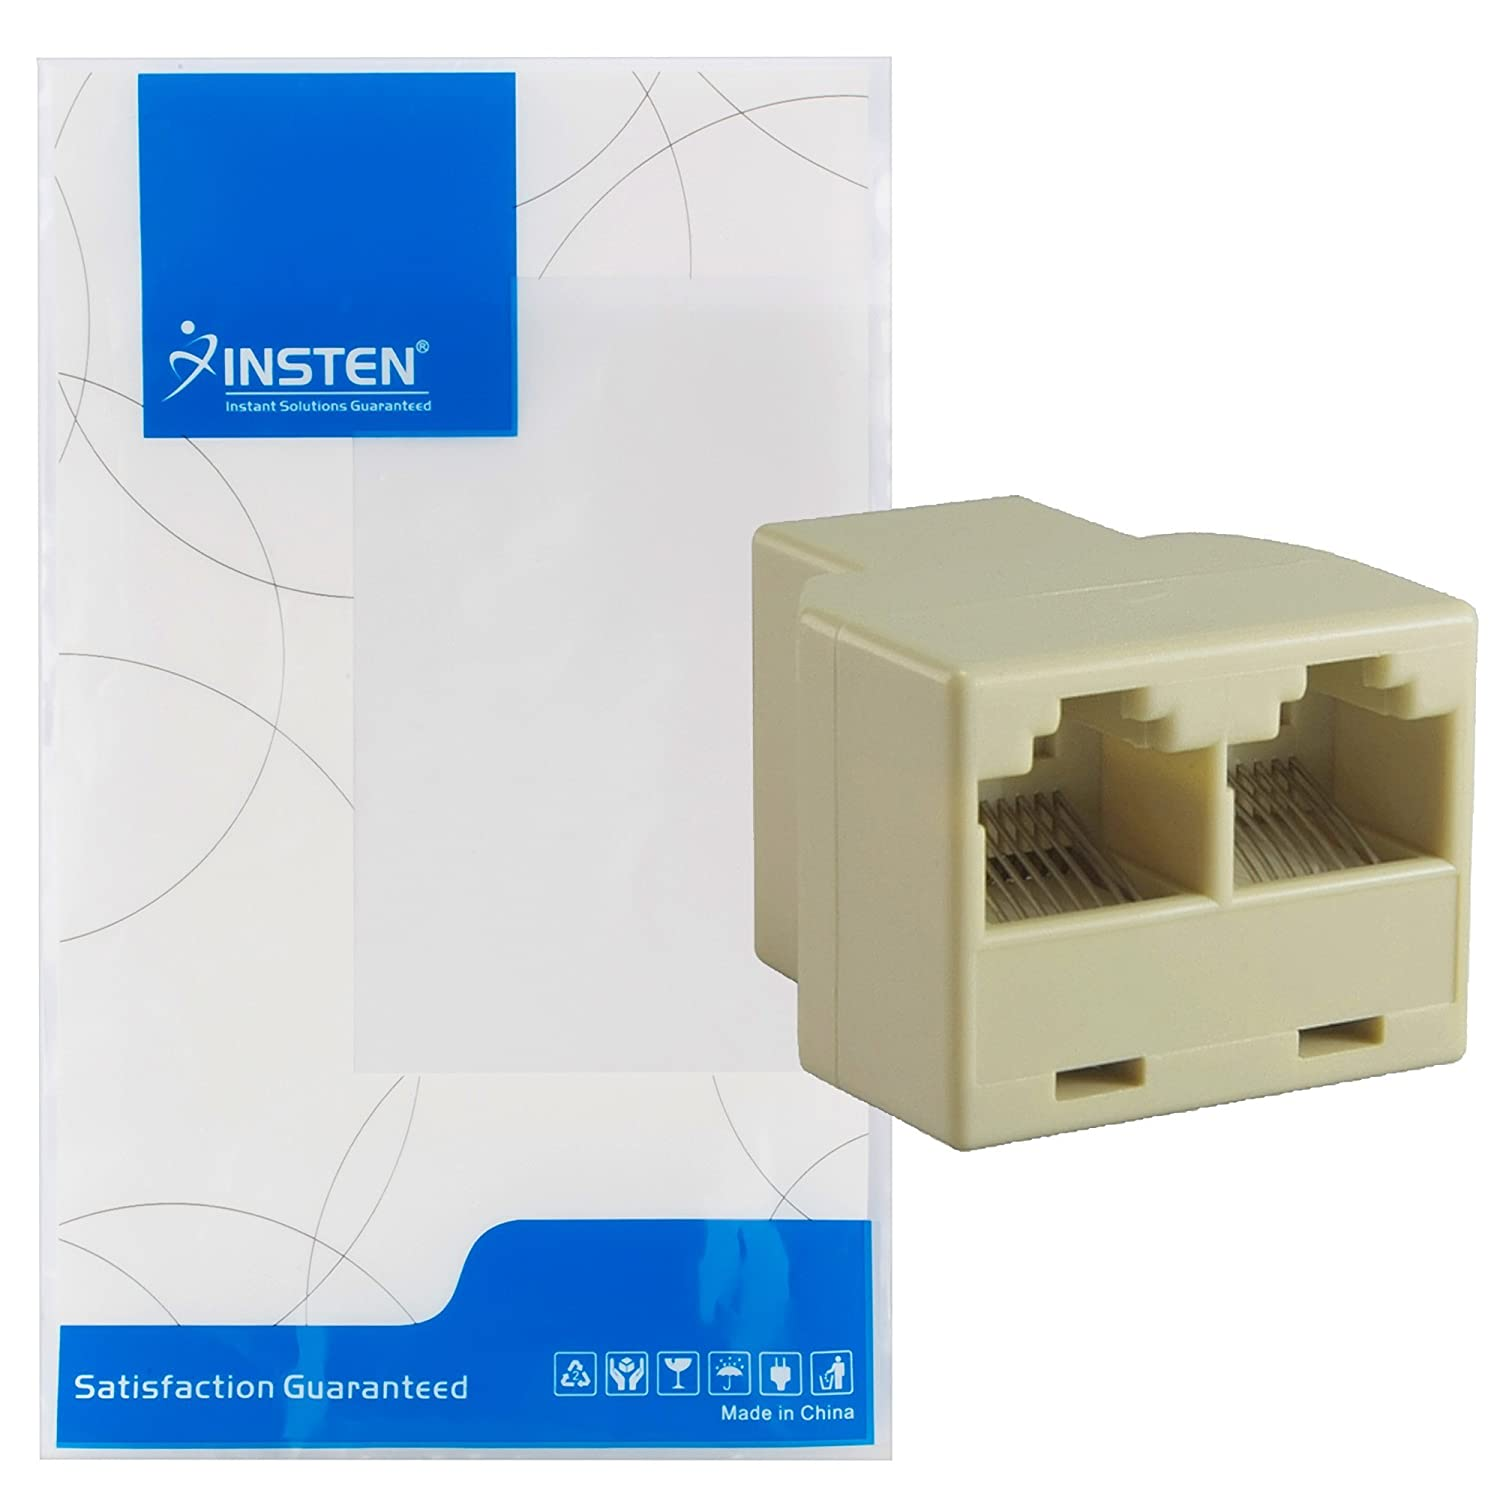 Insten Rj45 Cat 5 6 Lan Ethernet Splitter Connector Home Work Wiring Diagram For Ether In Addition Wall Jack Adapter Pc Audio Theater